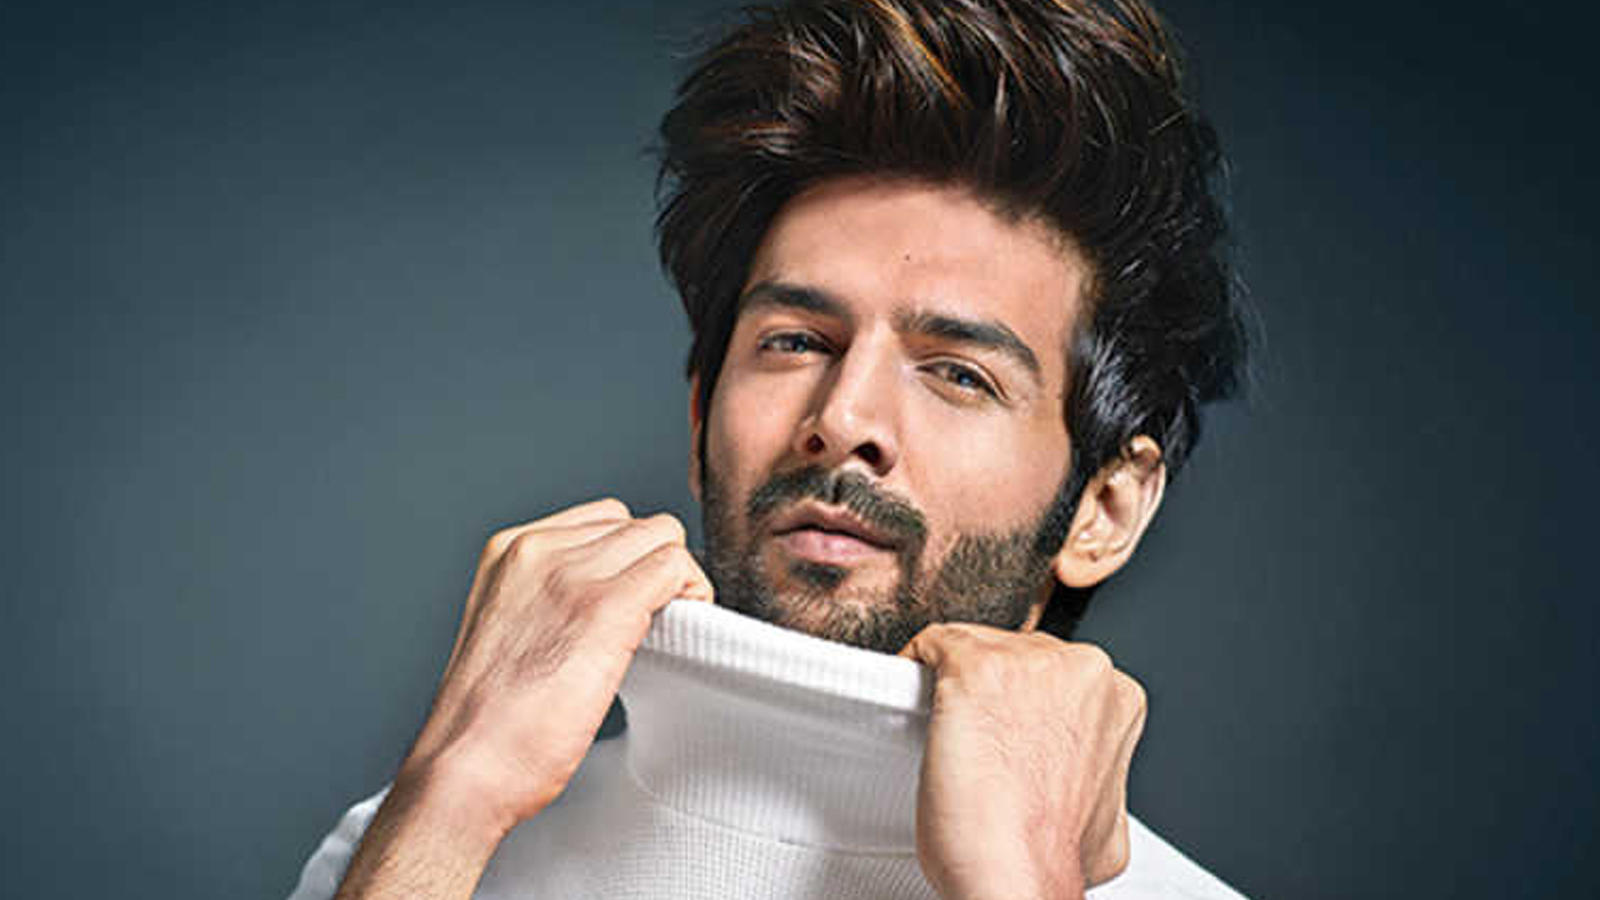 kartik-aaryan-to-star-with-salman-khan-in-sooraj-barjatyas-next-movie